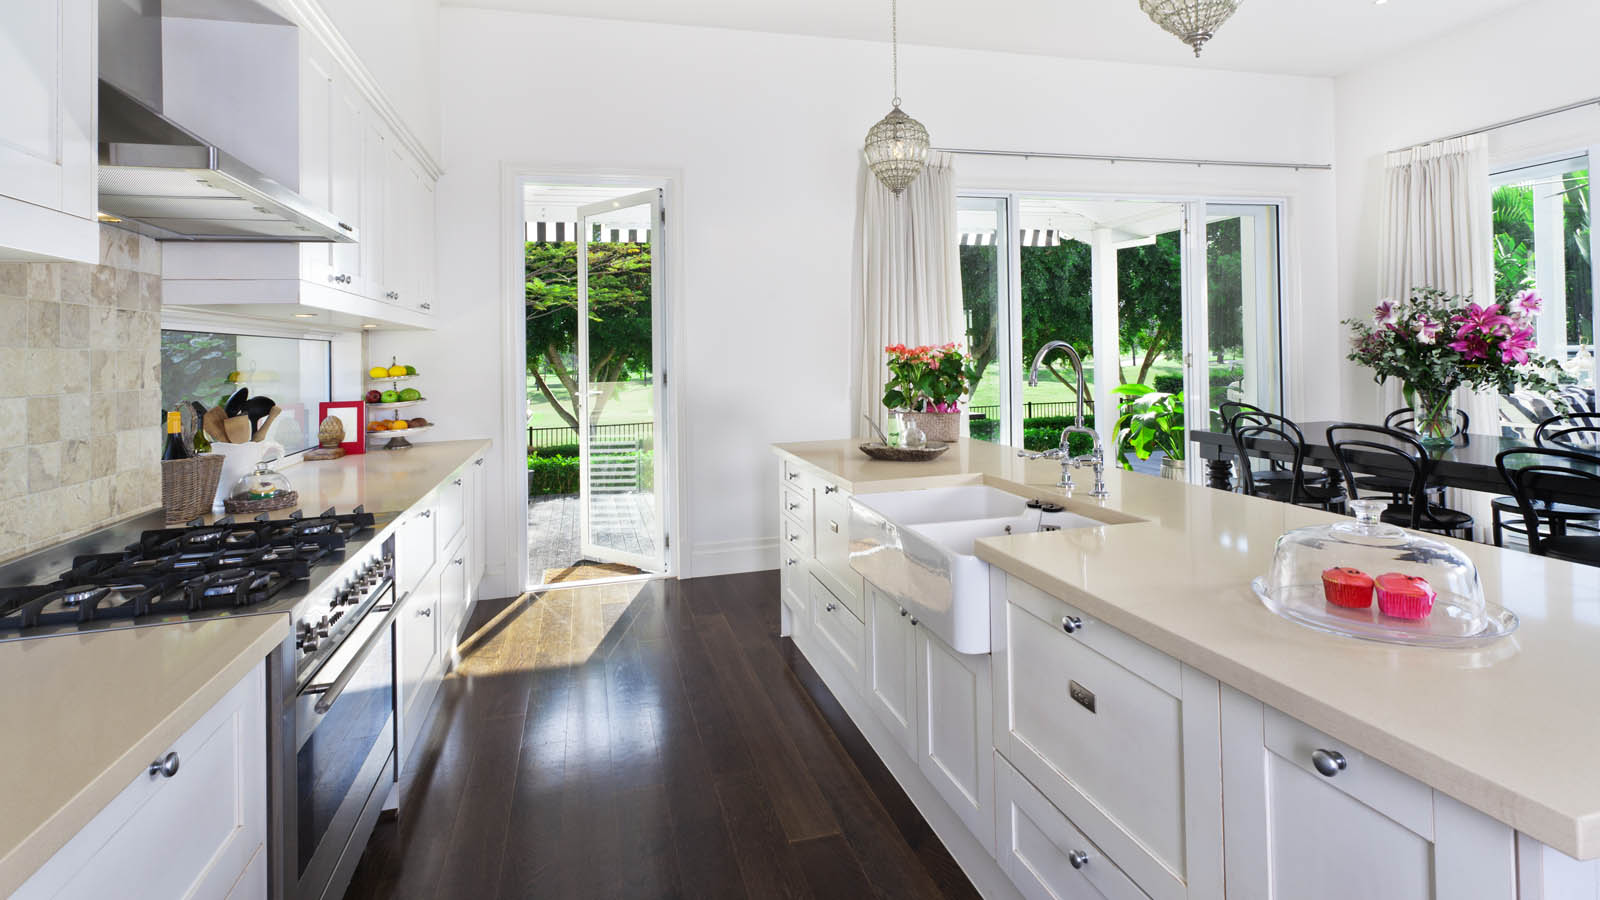 How To Clean Kitchen Maid Cabinets